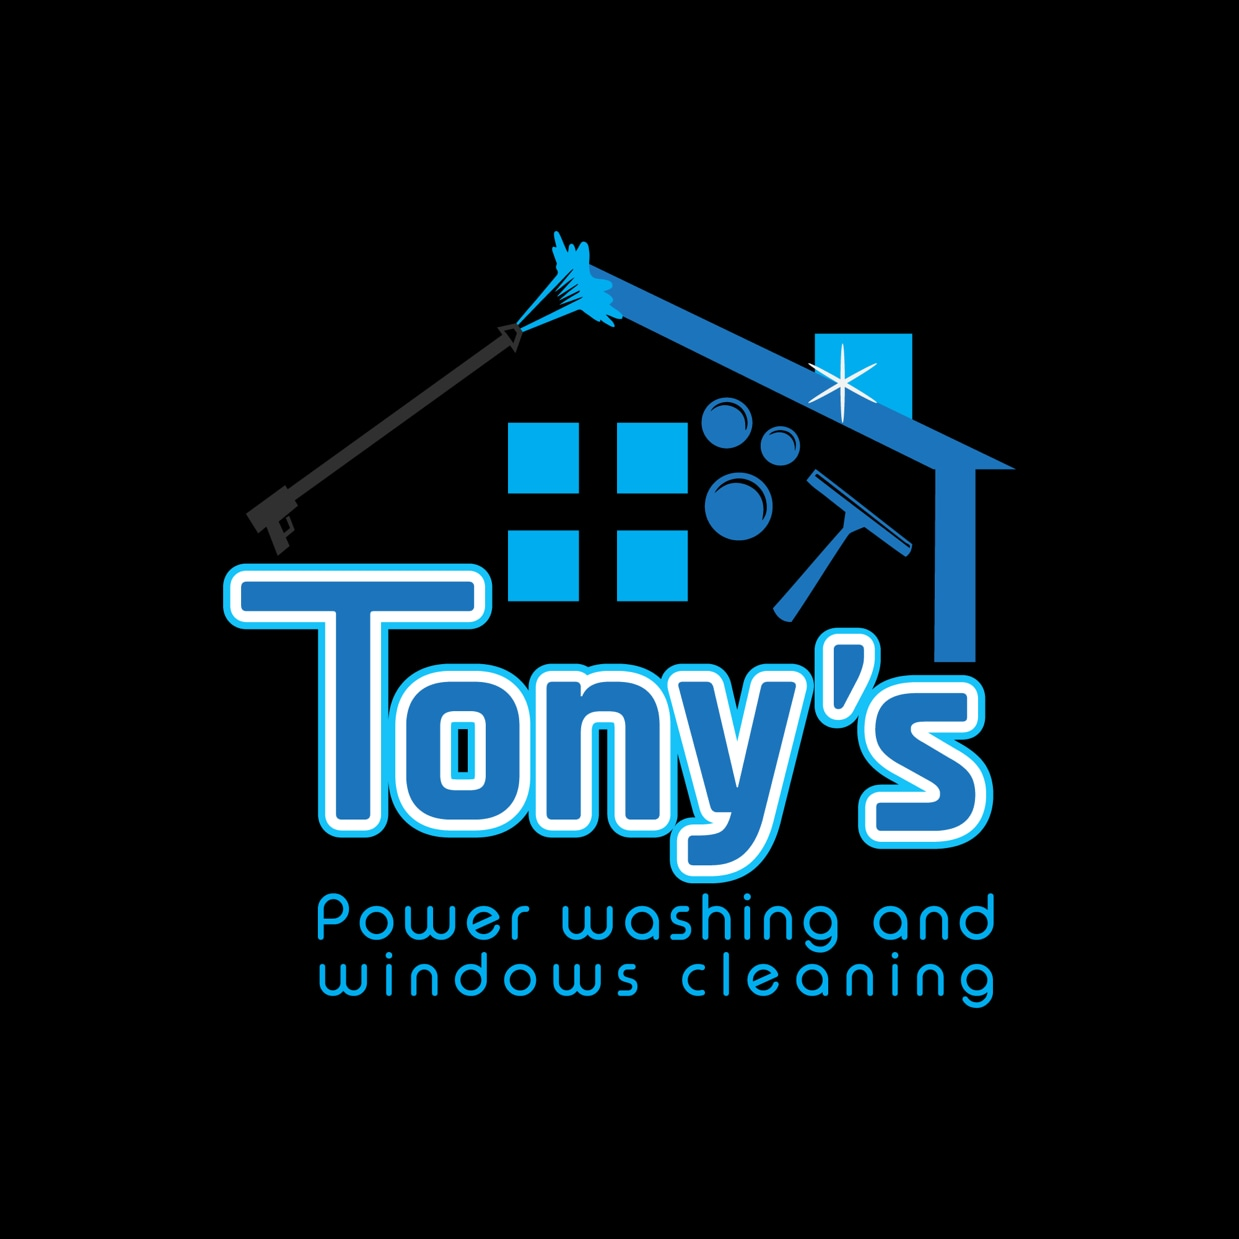 Tony's Power Washing and Window Cleaning